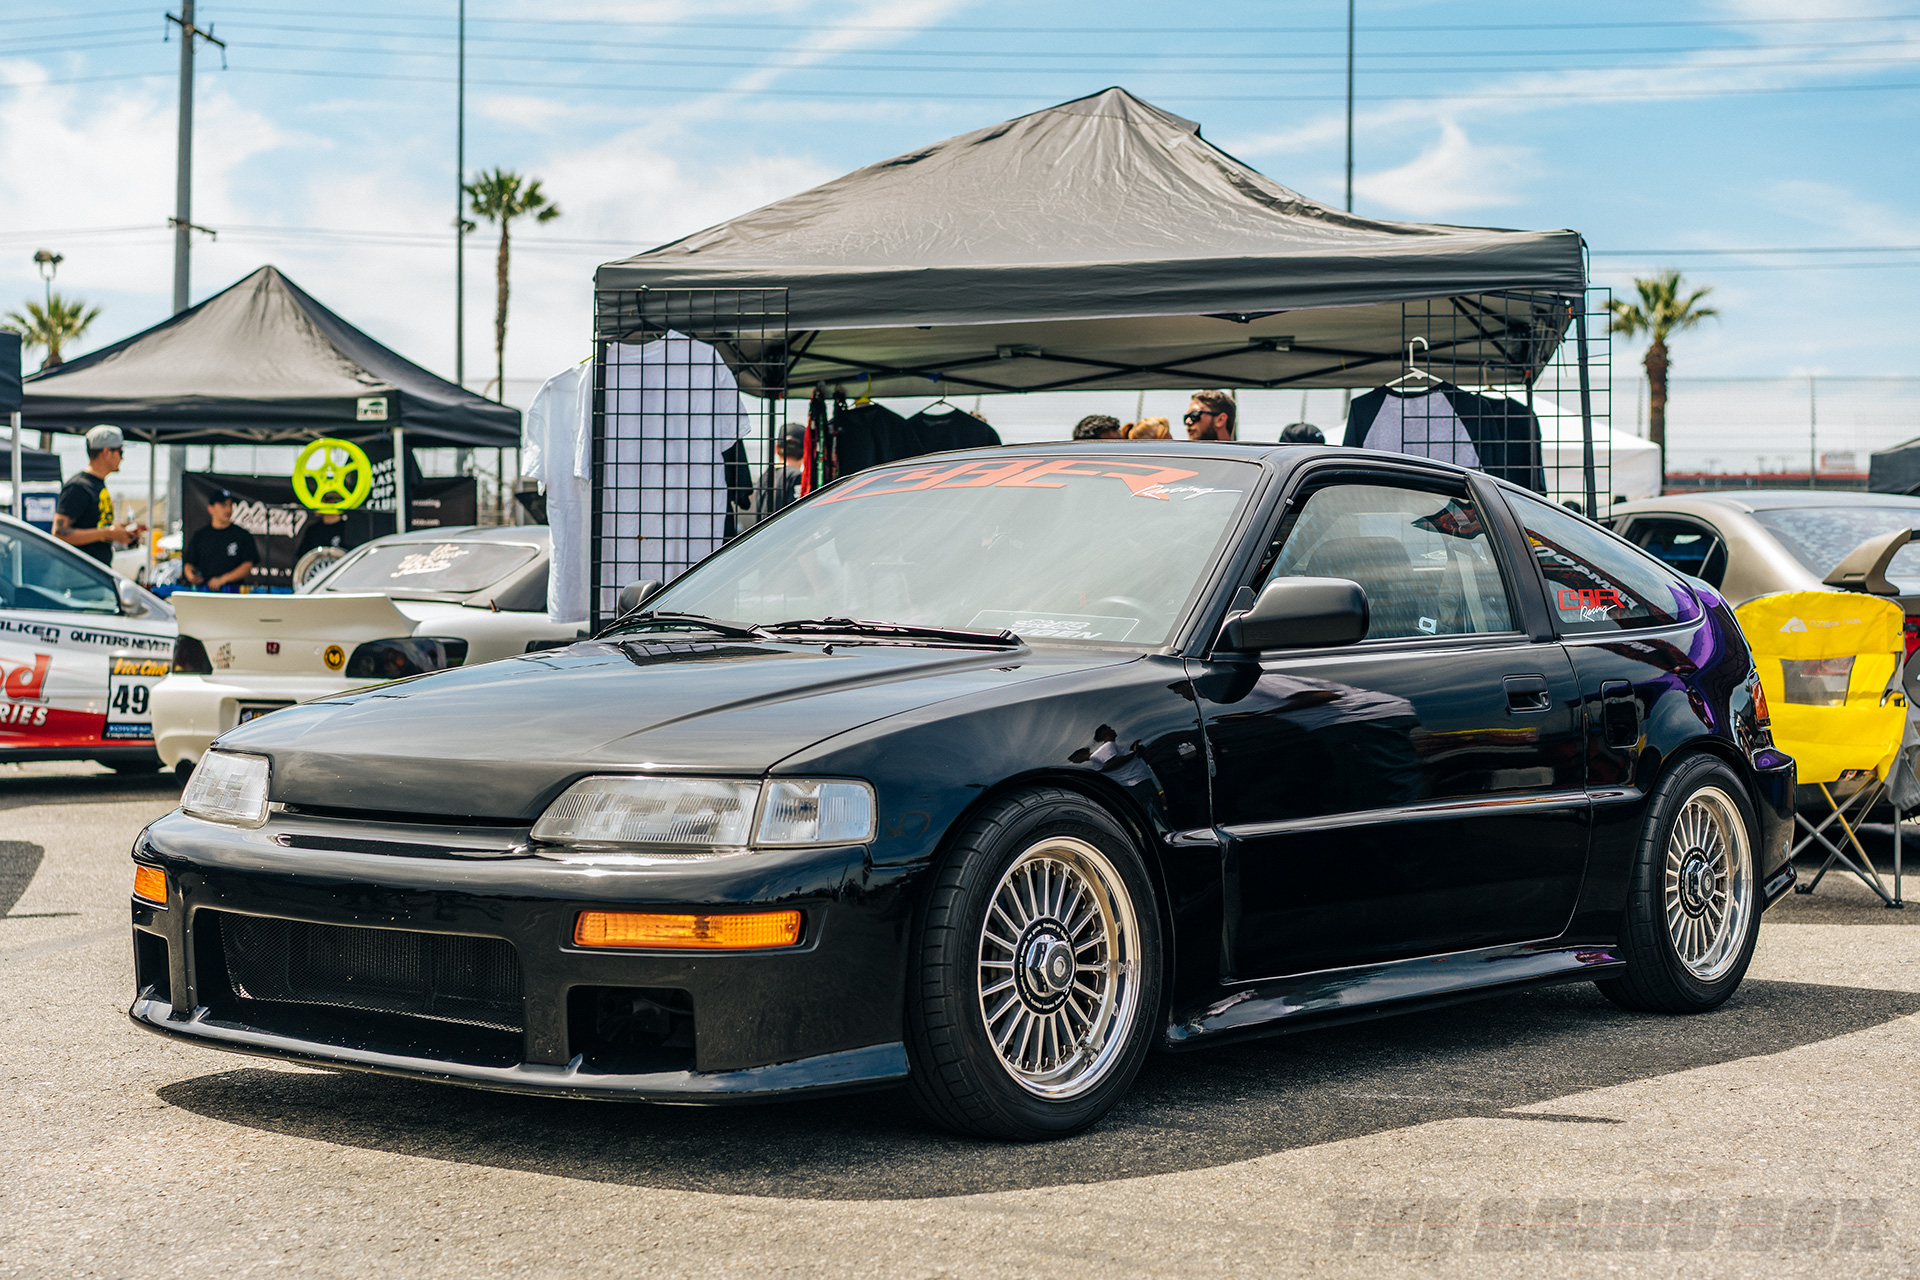 14th Annual Eibach Honda Meet, Honda CRX